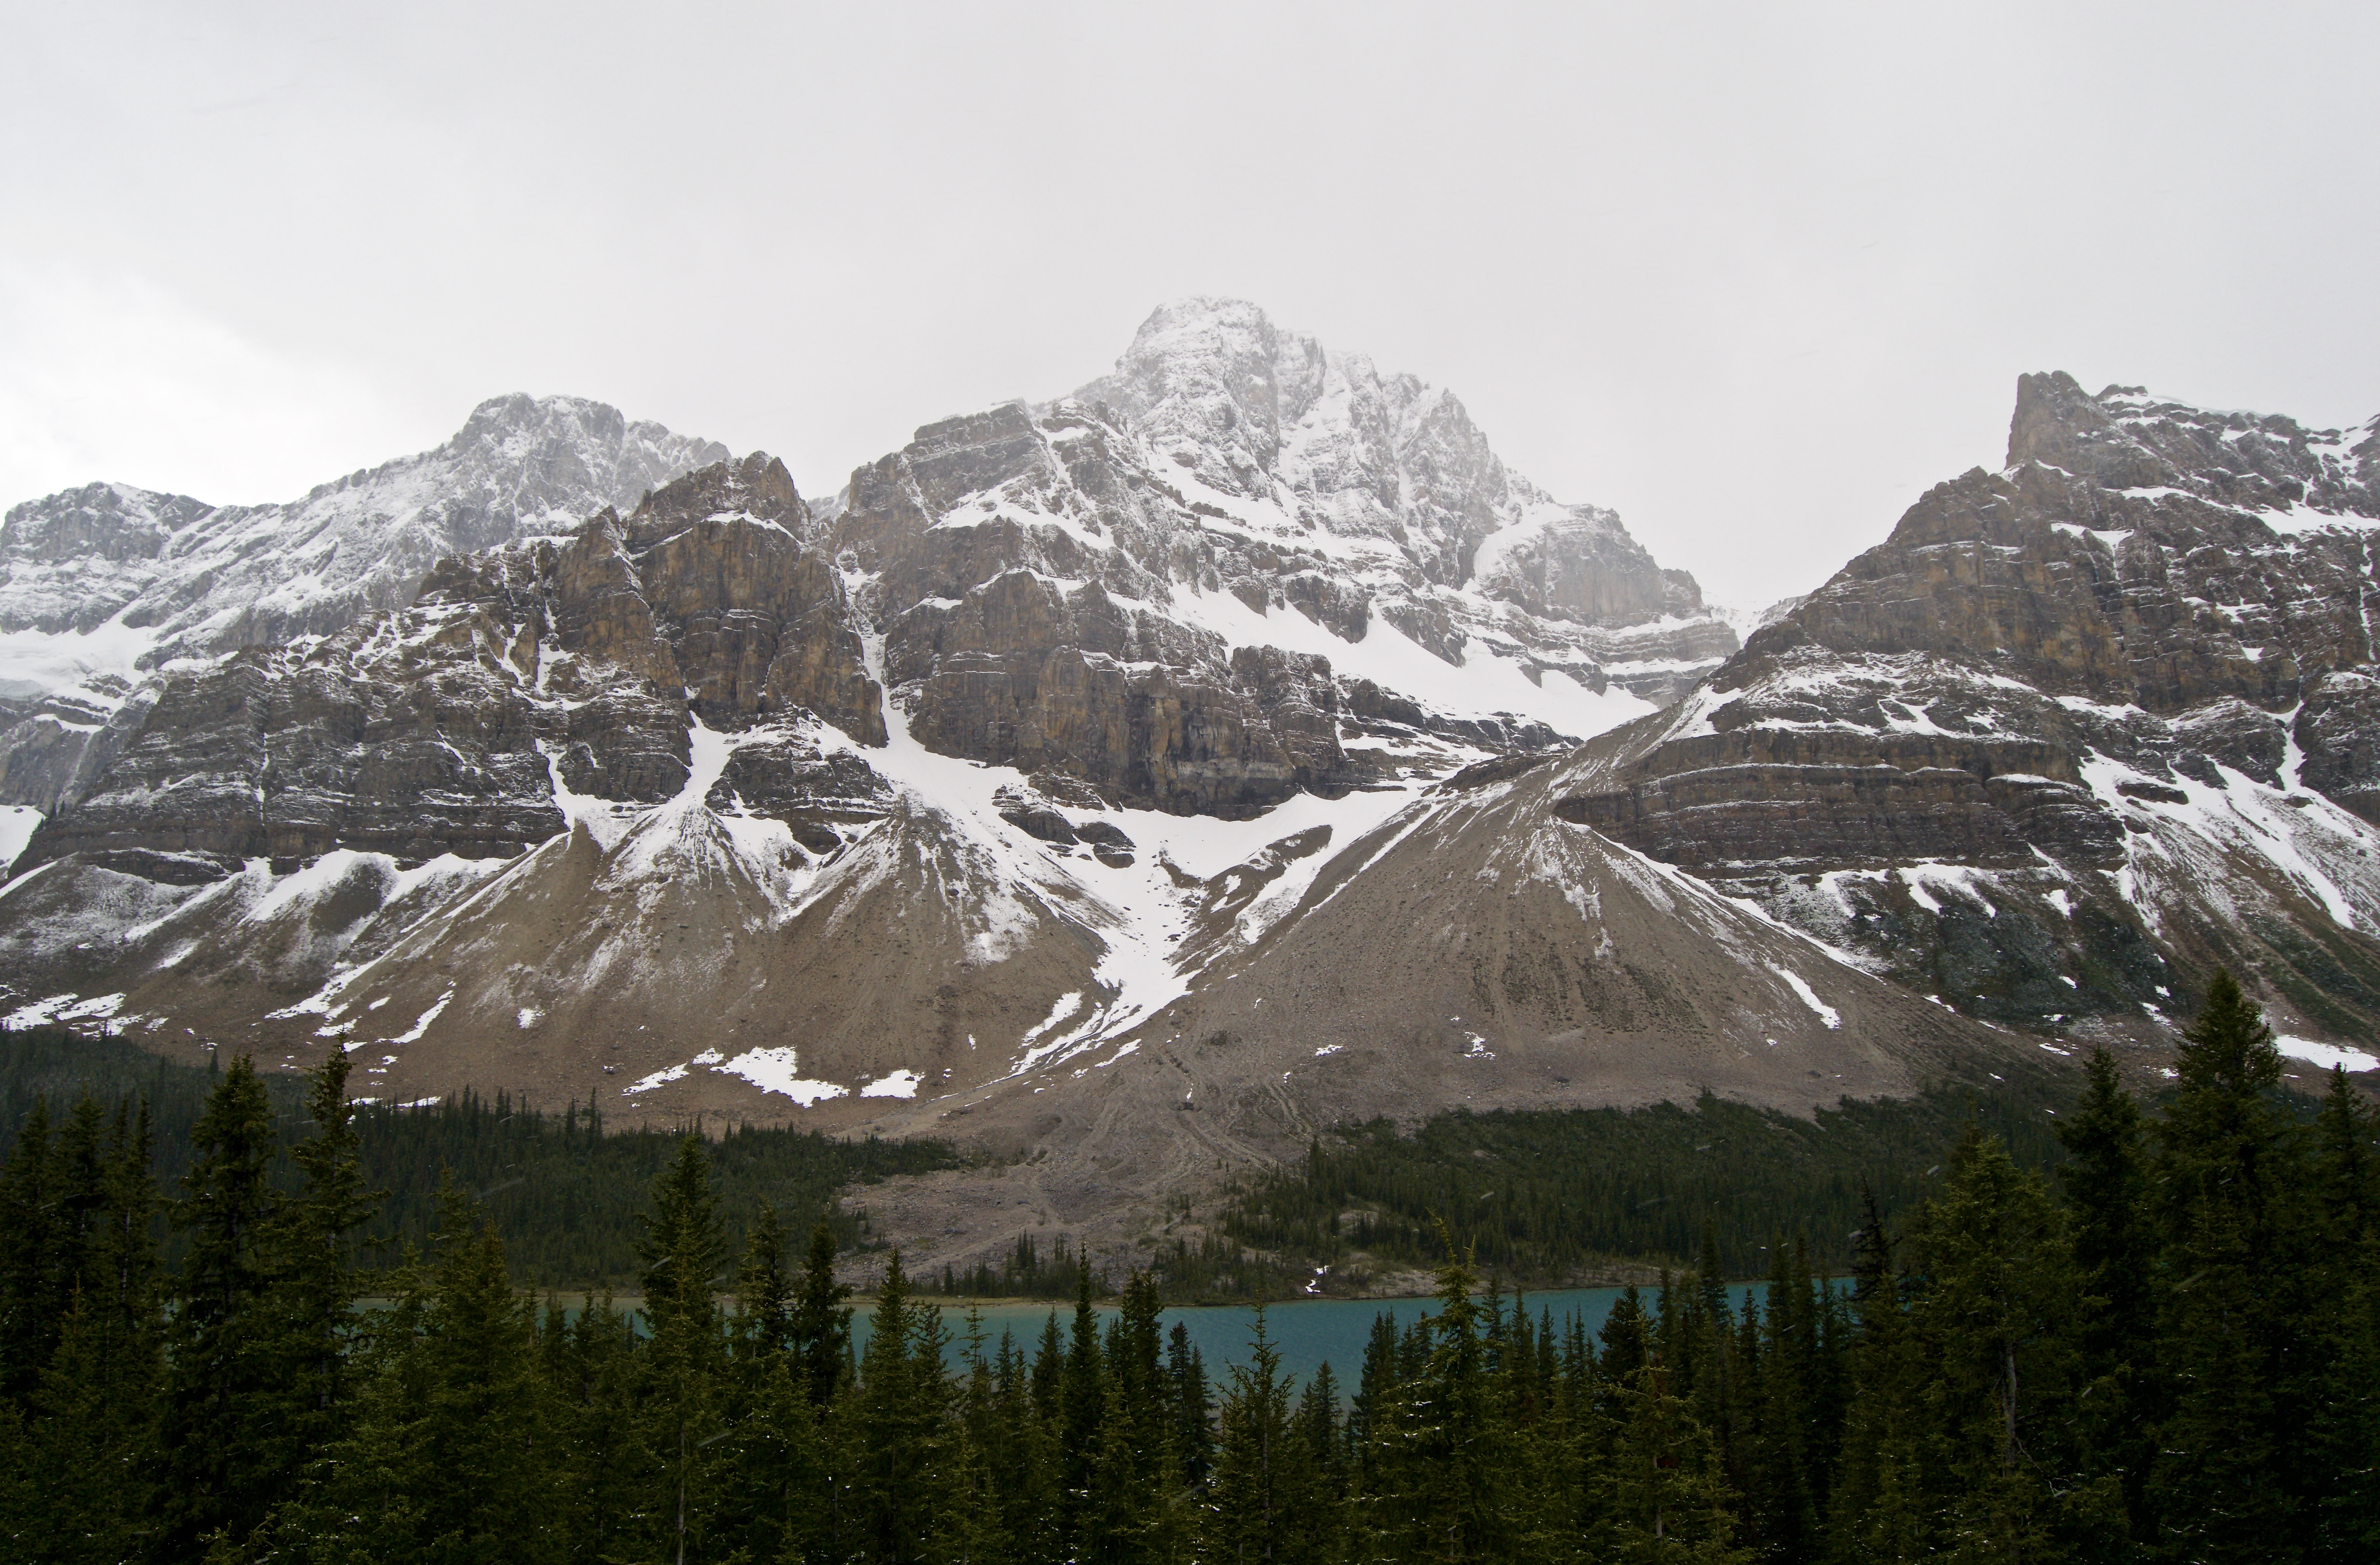 On a cloudy winter day in Canada, snow covers a rocky mountain range flanked with pine trees surrounding a lake